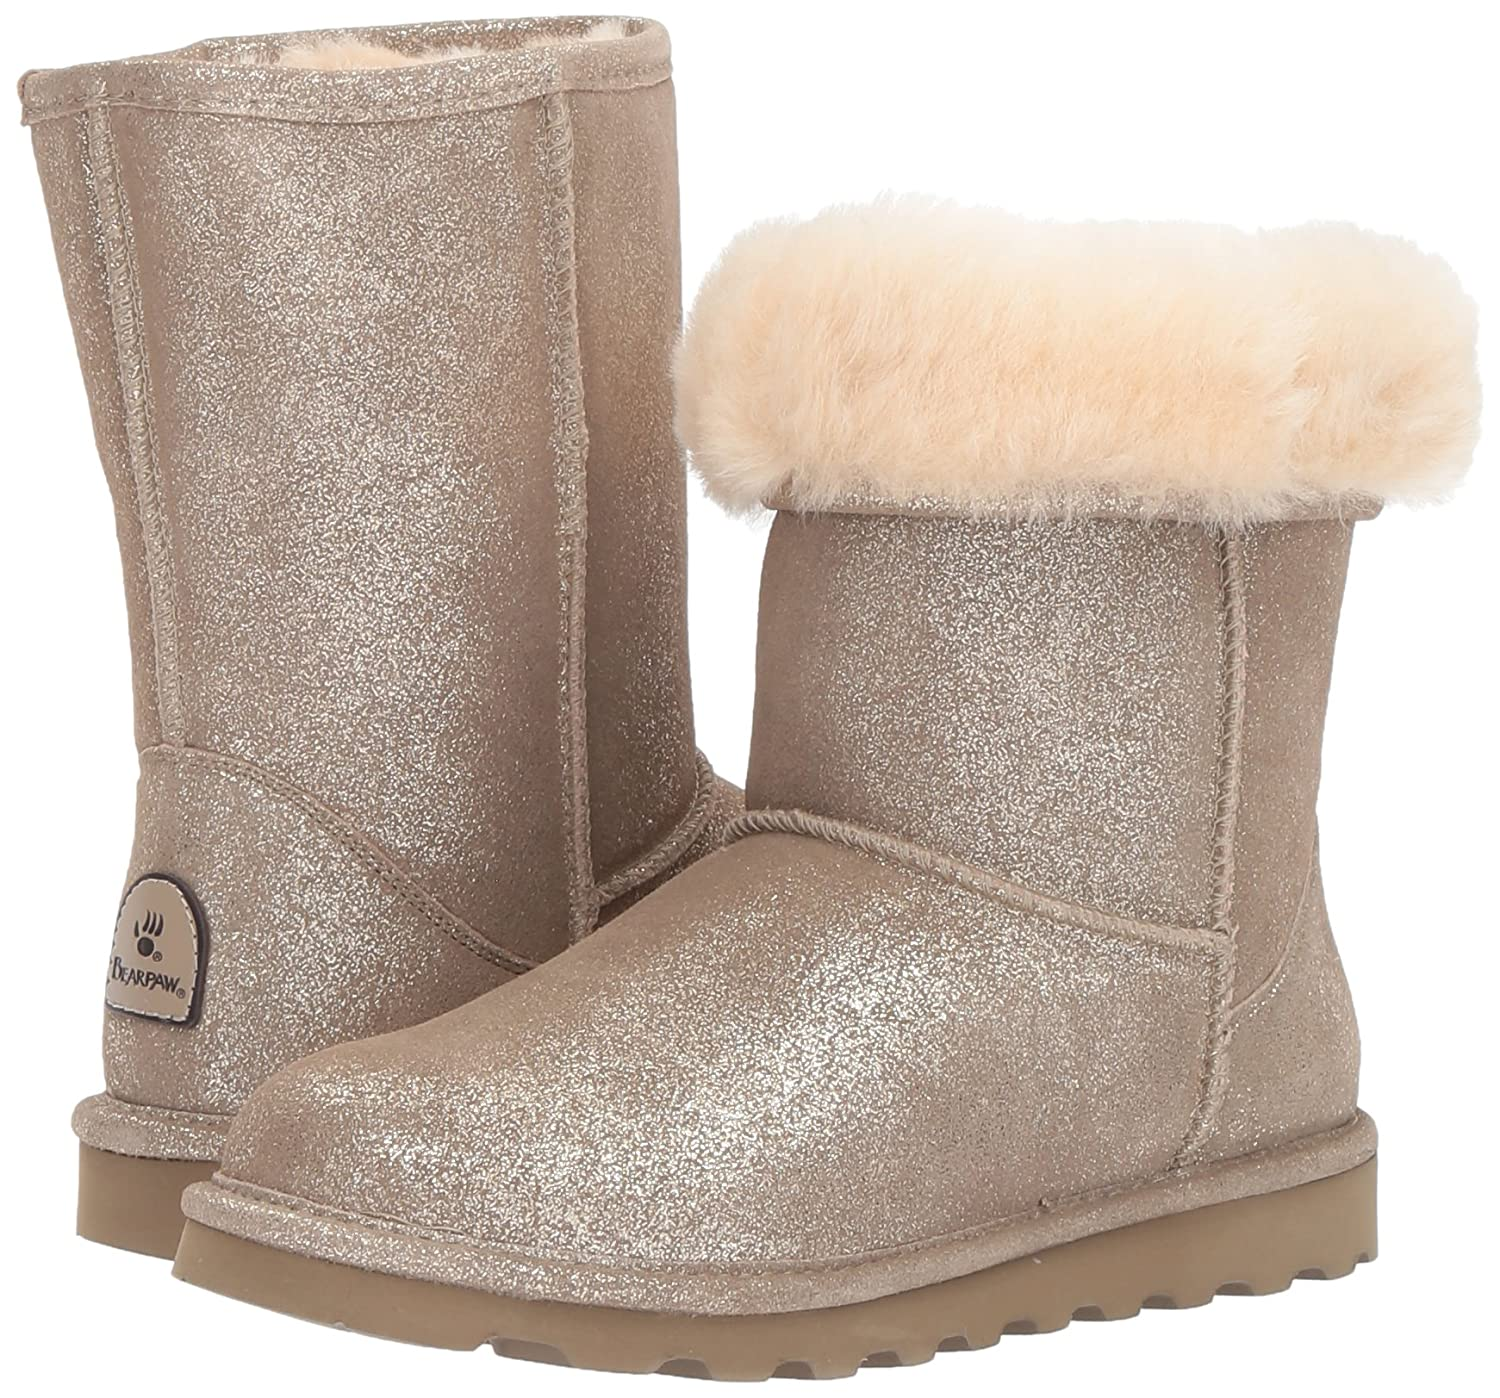 BEARPAW Women's 7 Elle Short Winter Boot B06XRQL5S8 7 Women's B(M) US|Pewter Distressed 5ada37